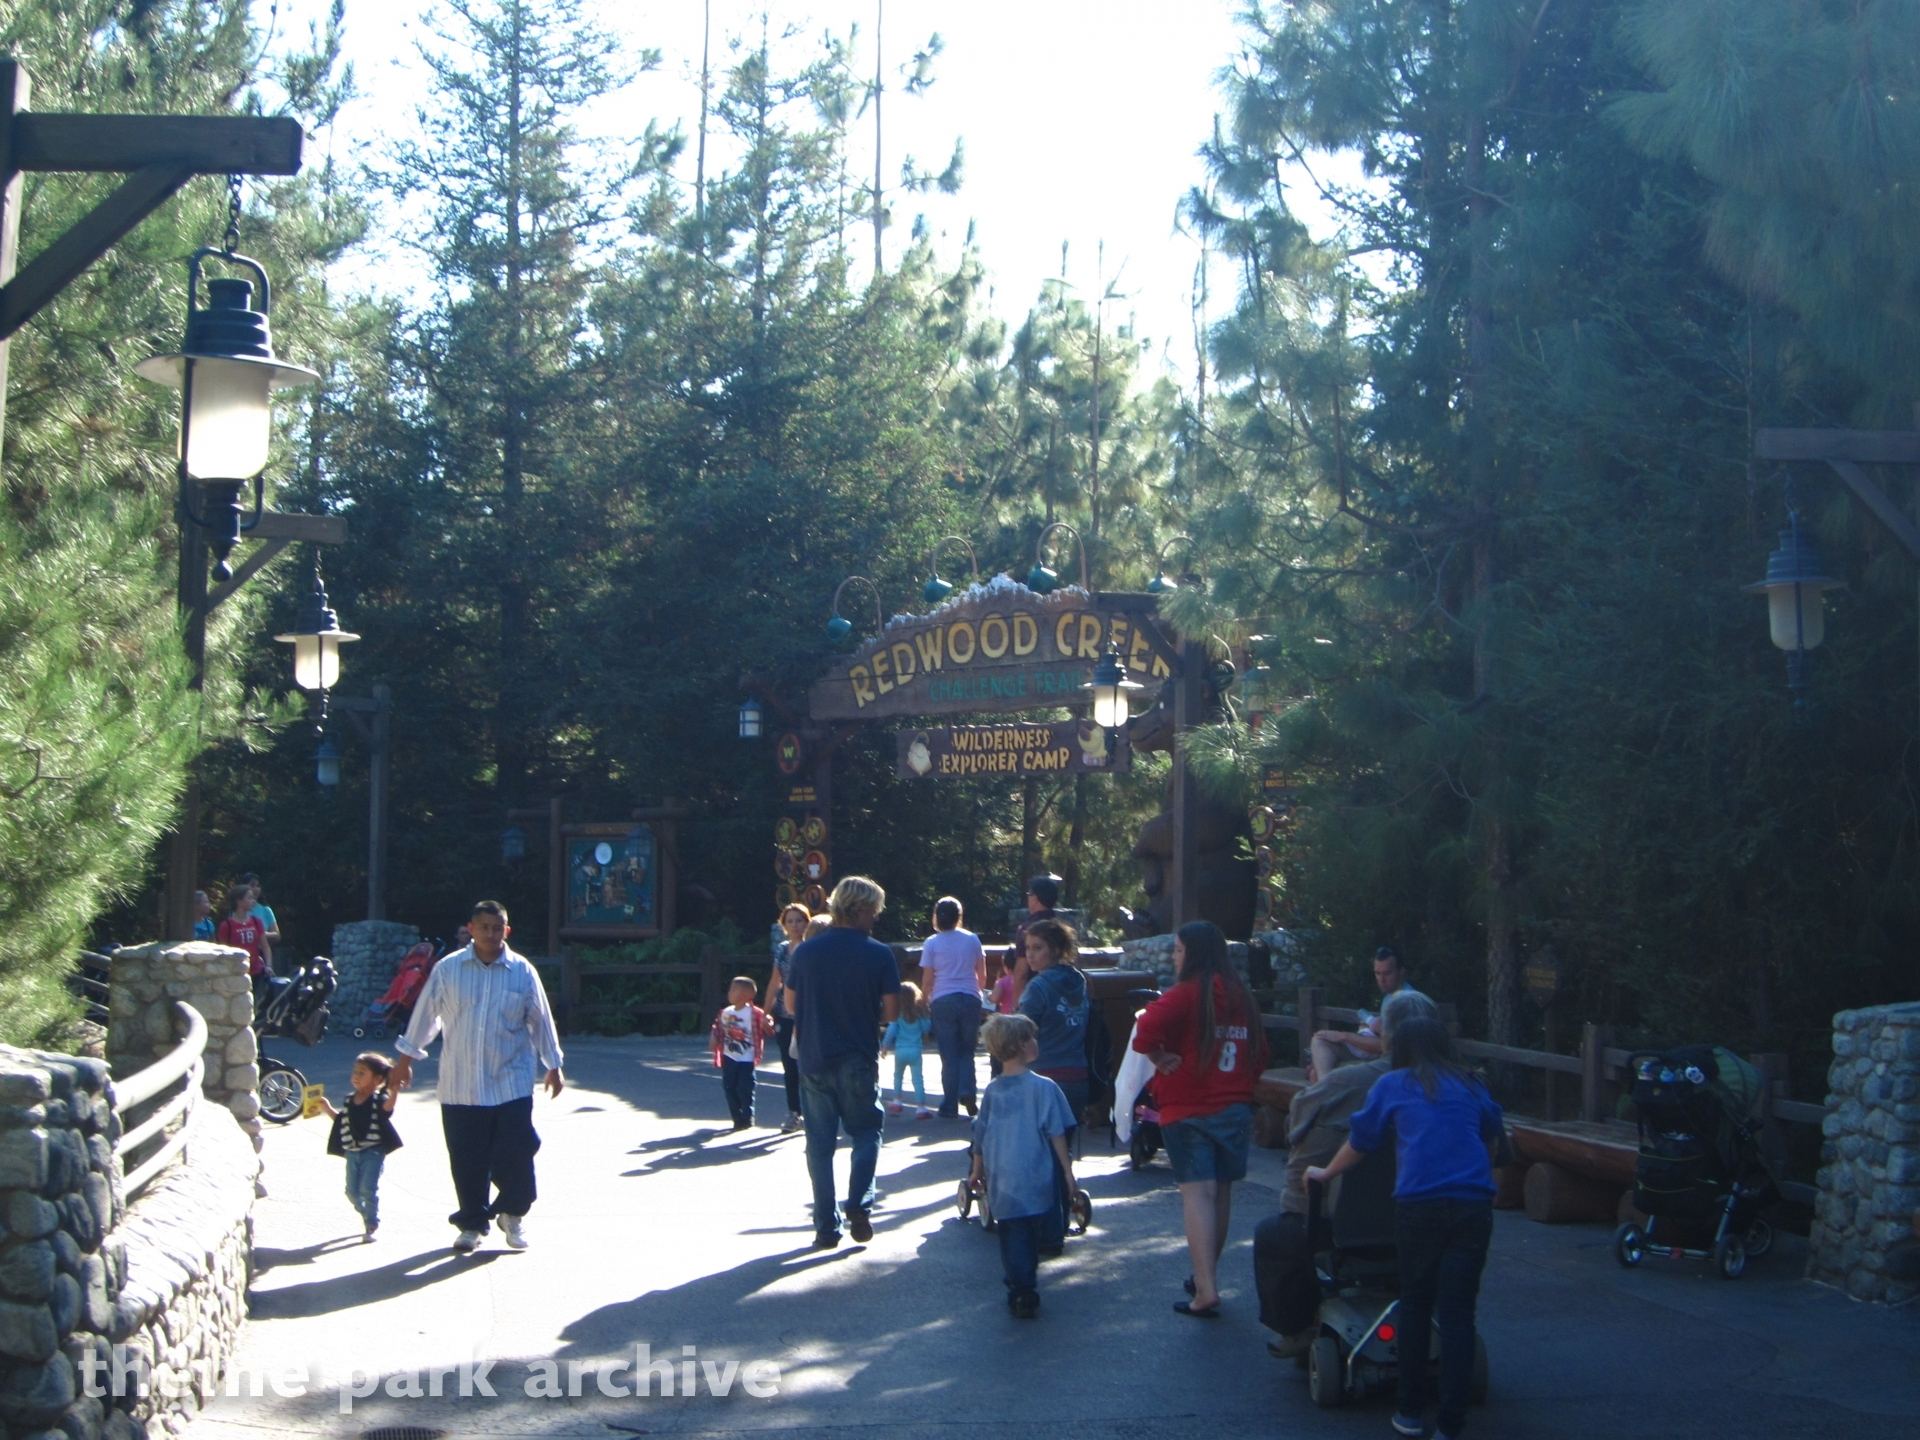 Redwood Creek Challenge Trail at Disney California Adventure